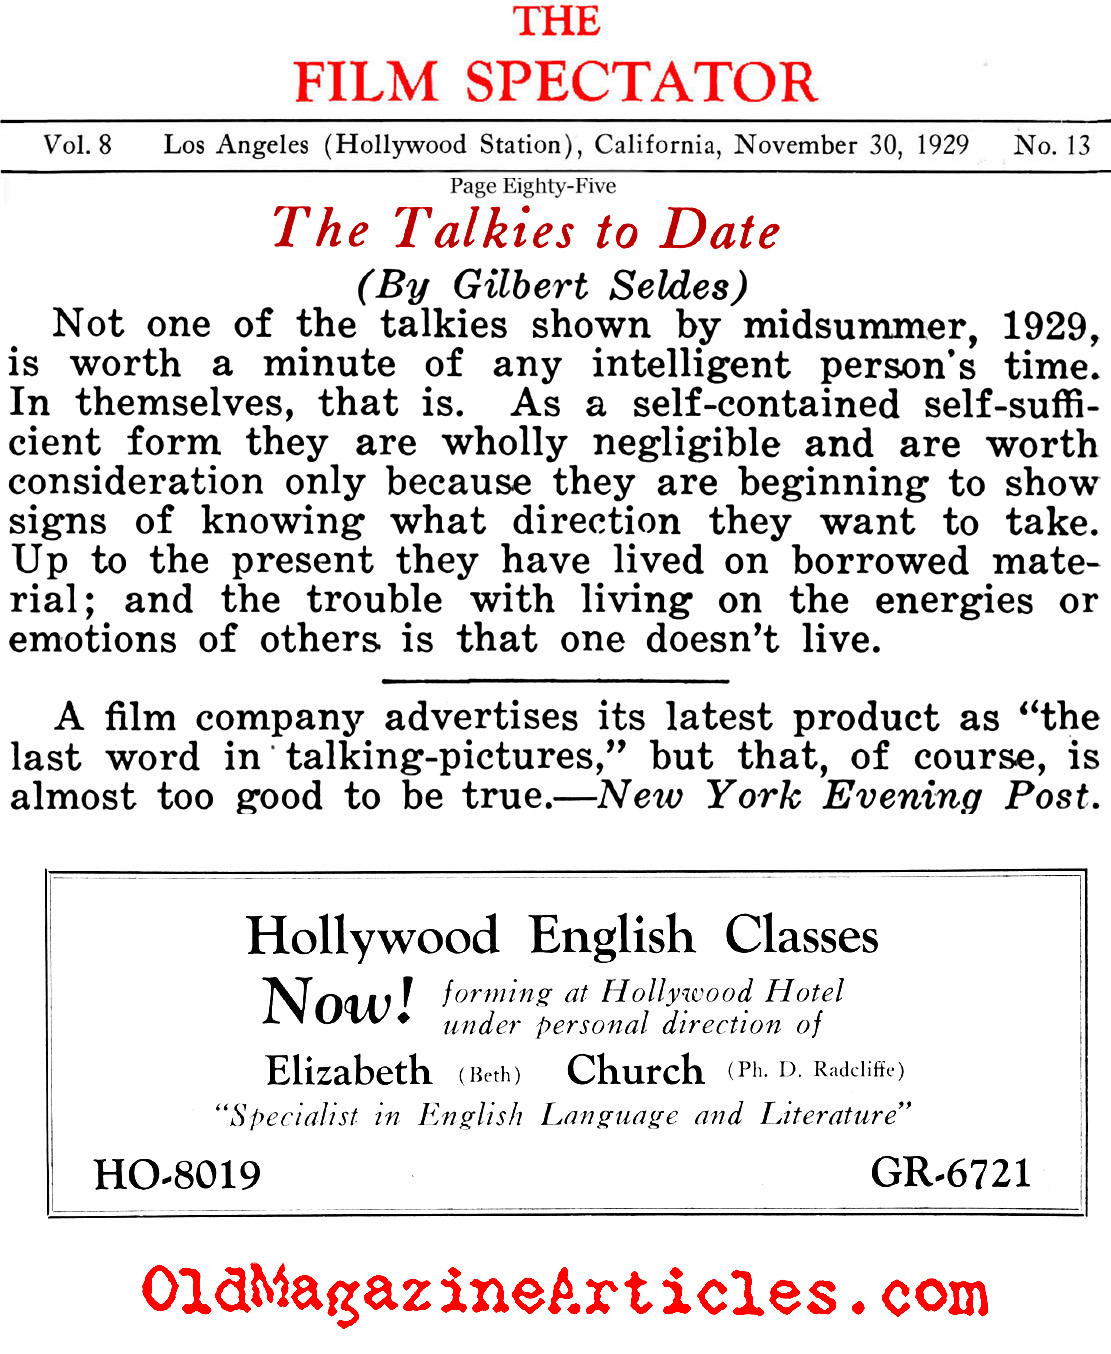 Talking Pictures Fail to Impress (Film Spectator, 1929)